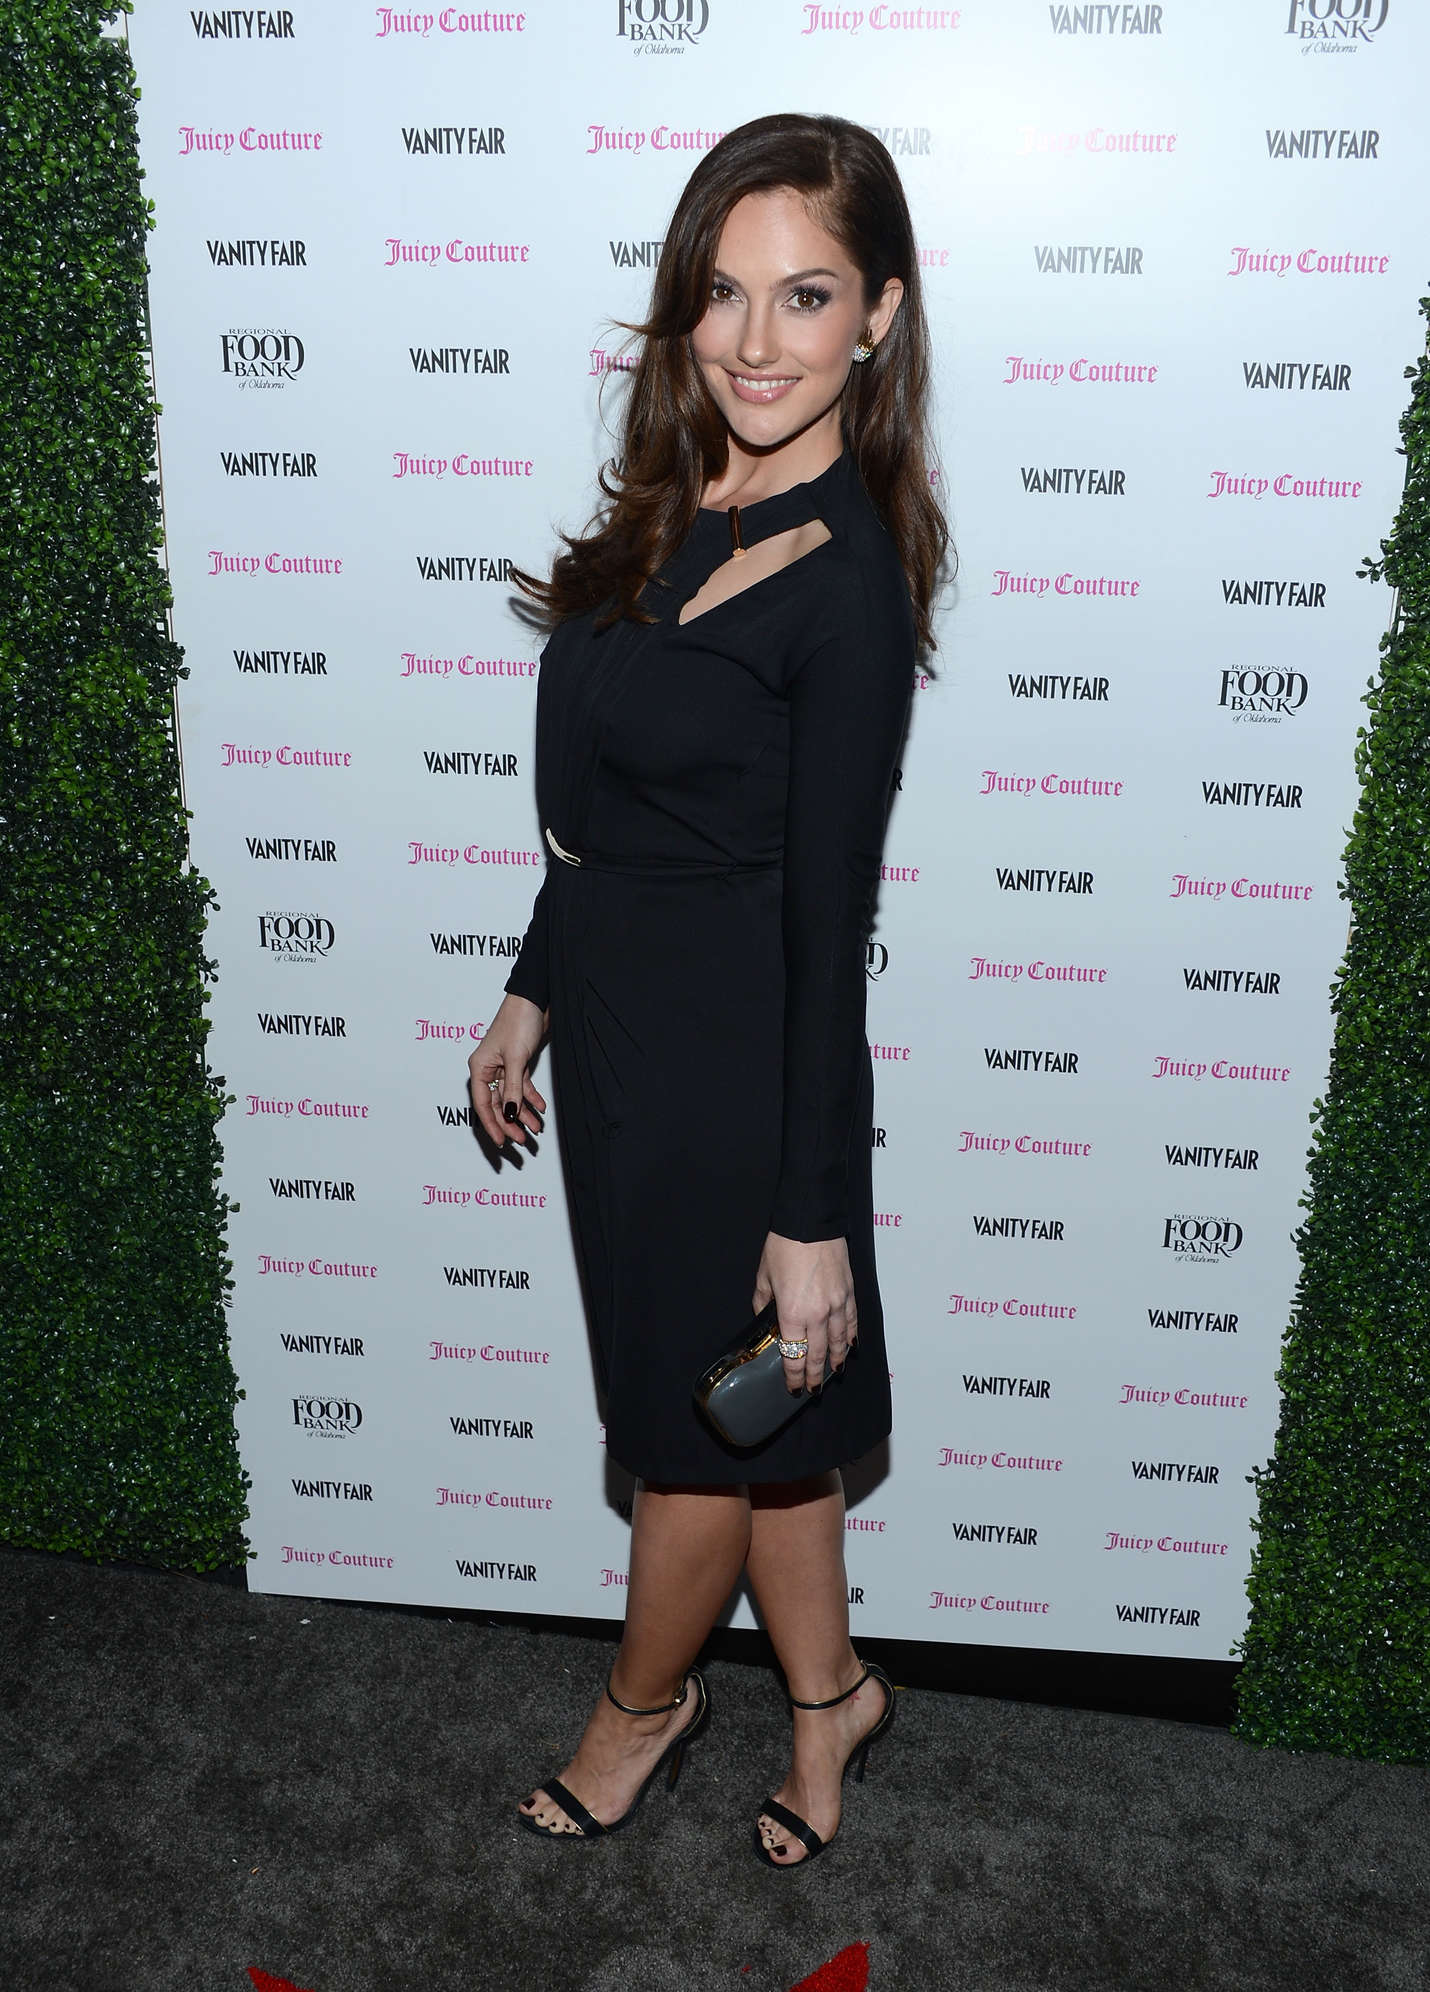 Minka Kelly – Vanity Fair and Juicy Couture 2013 Vanities Calendar event-15